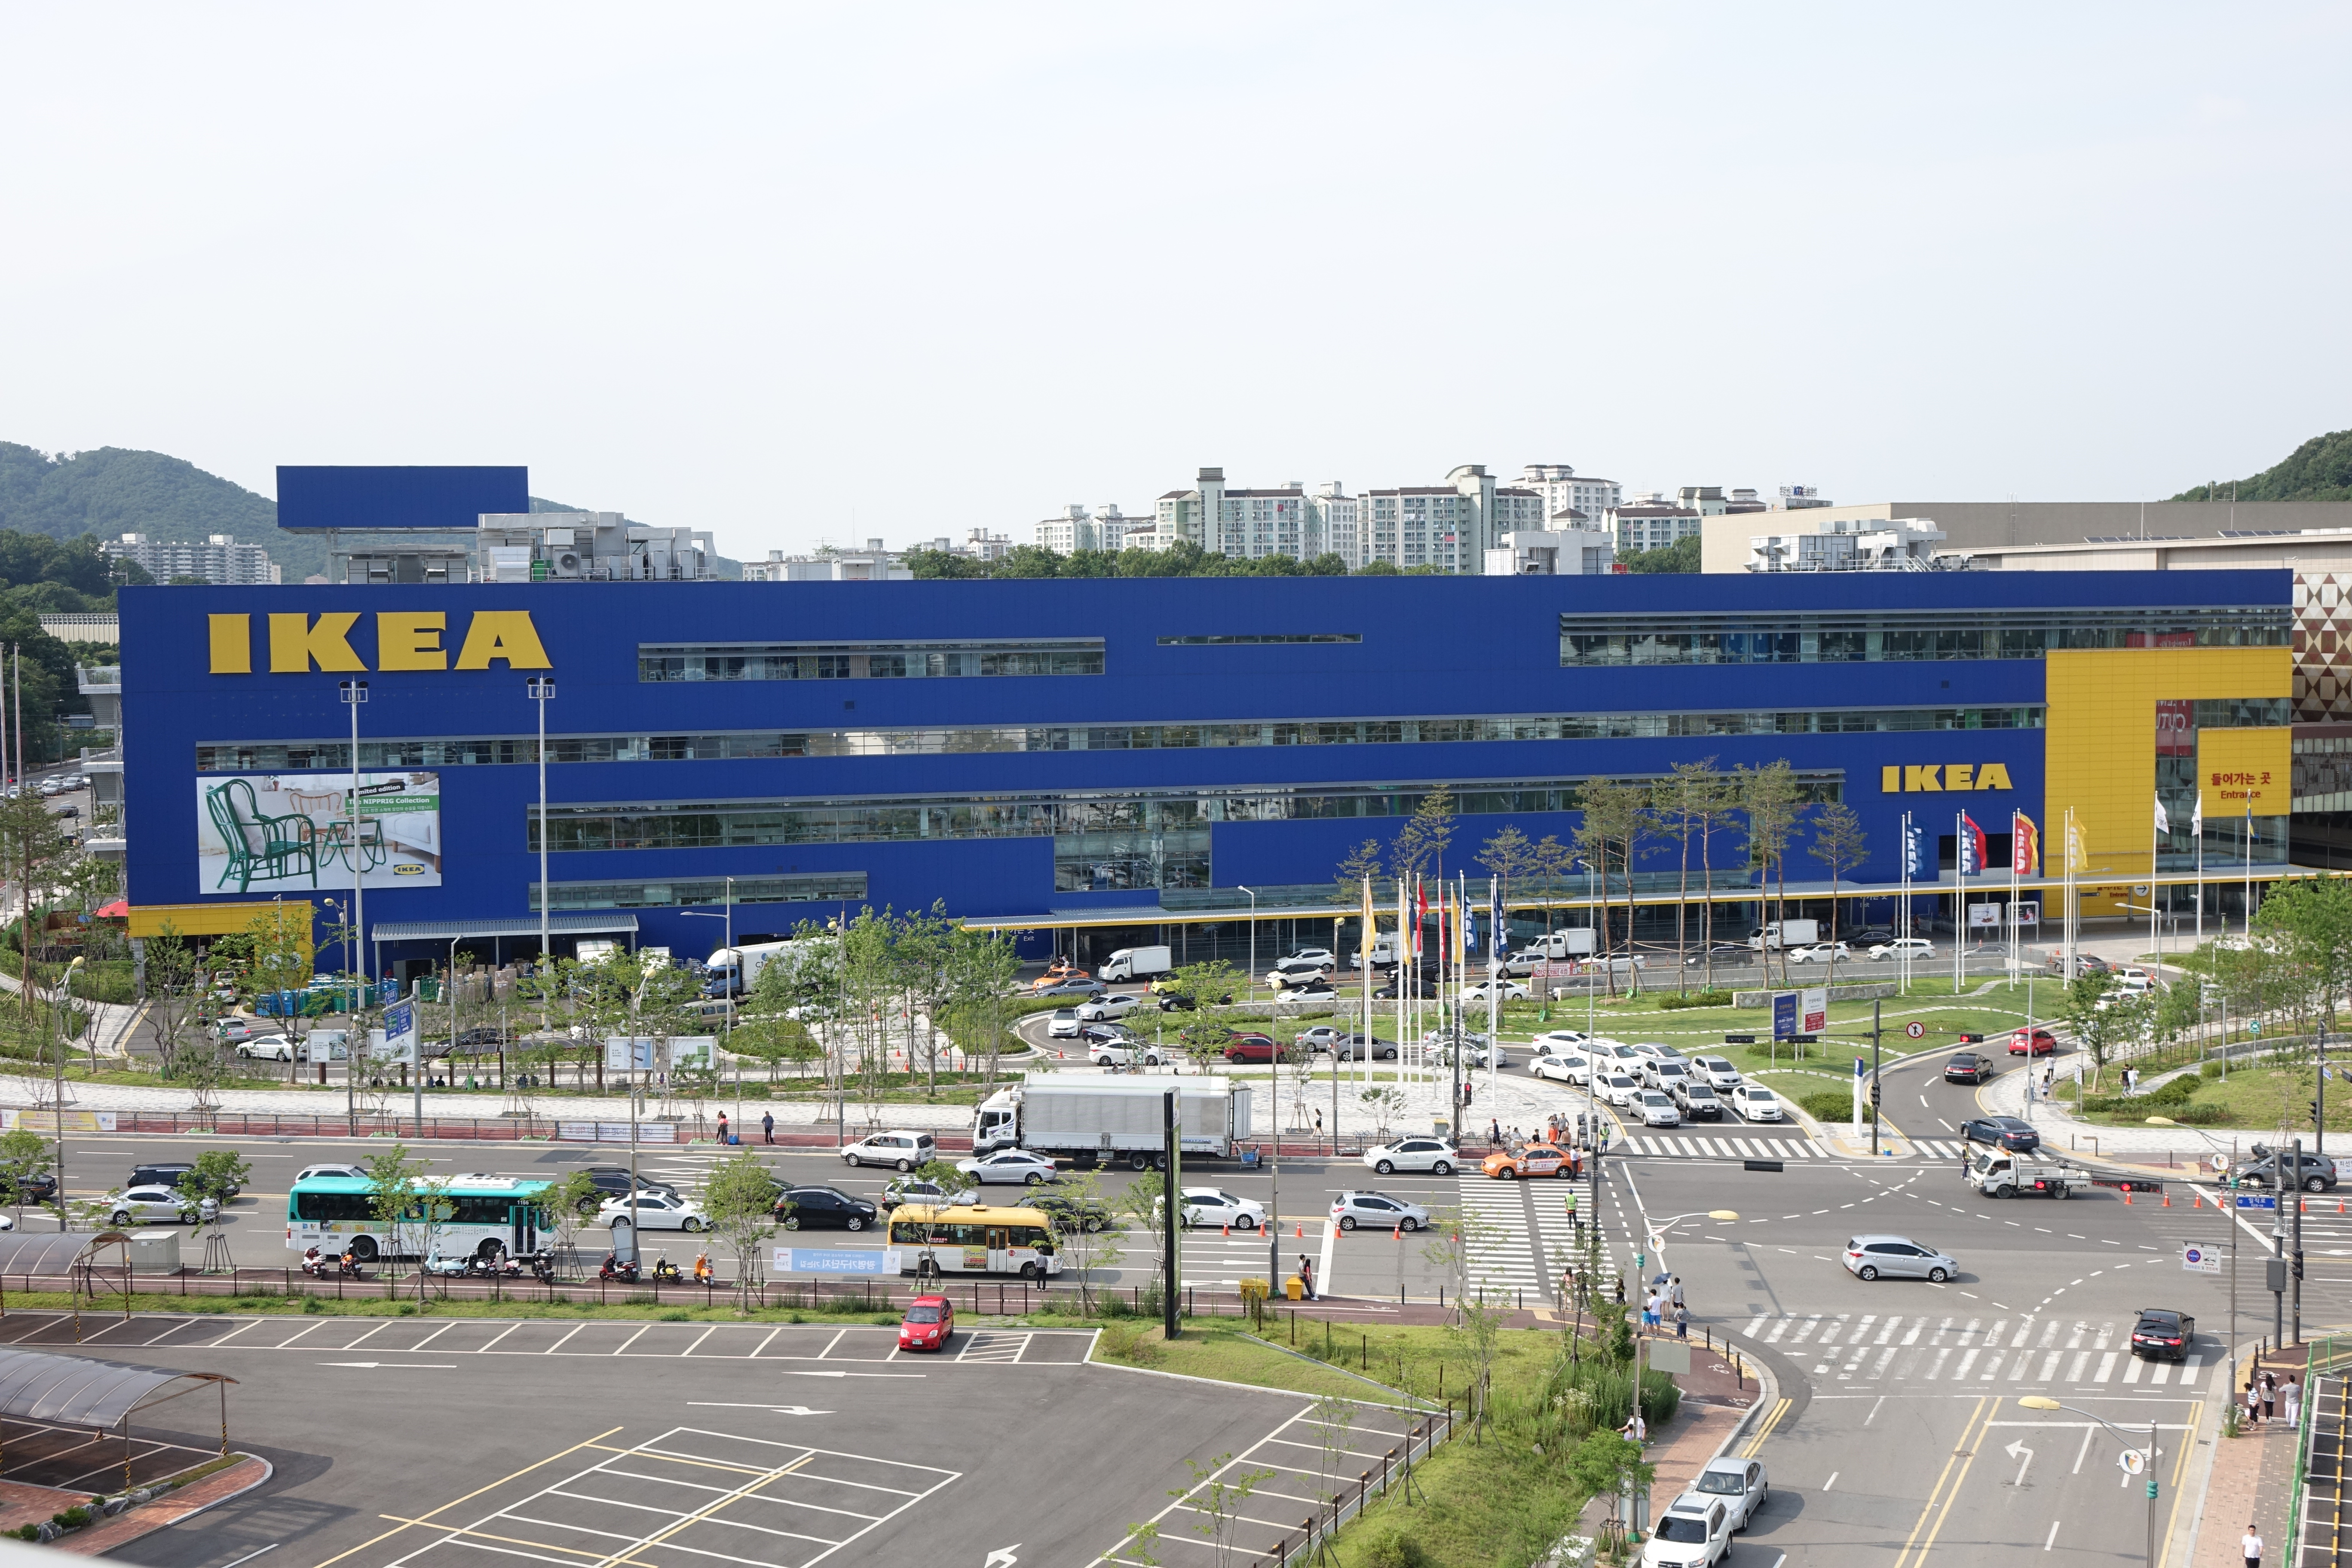 G Star Winkel Zwolle List Of Countries With Ikea Stores Wikipedia